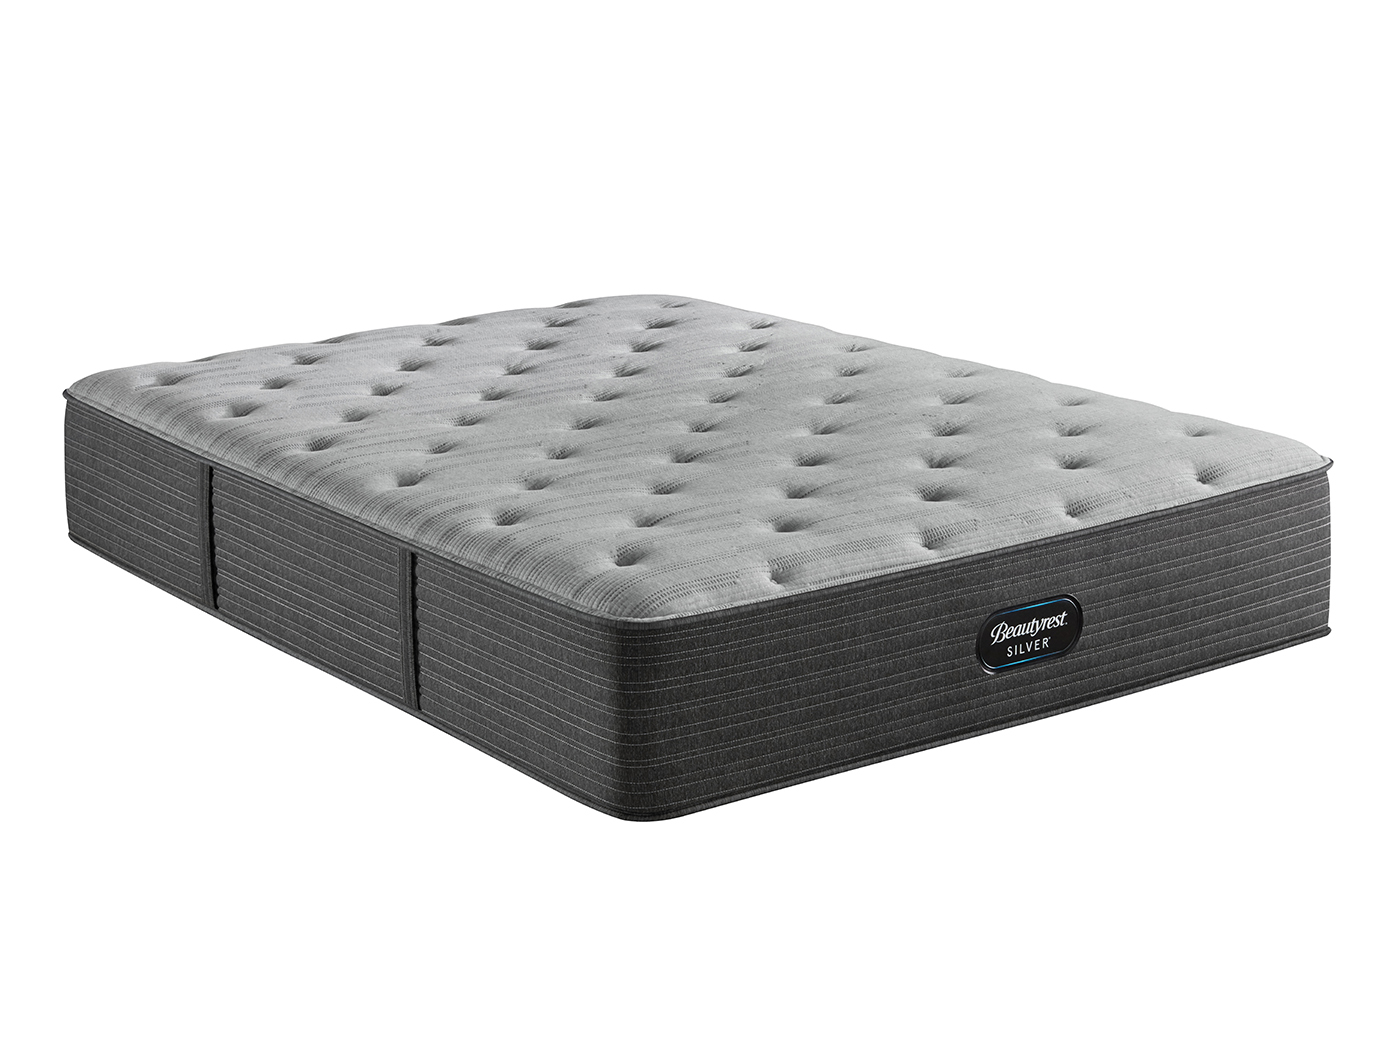 Beautyrest Silver BRS900C-RS Plush Full Mattress